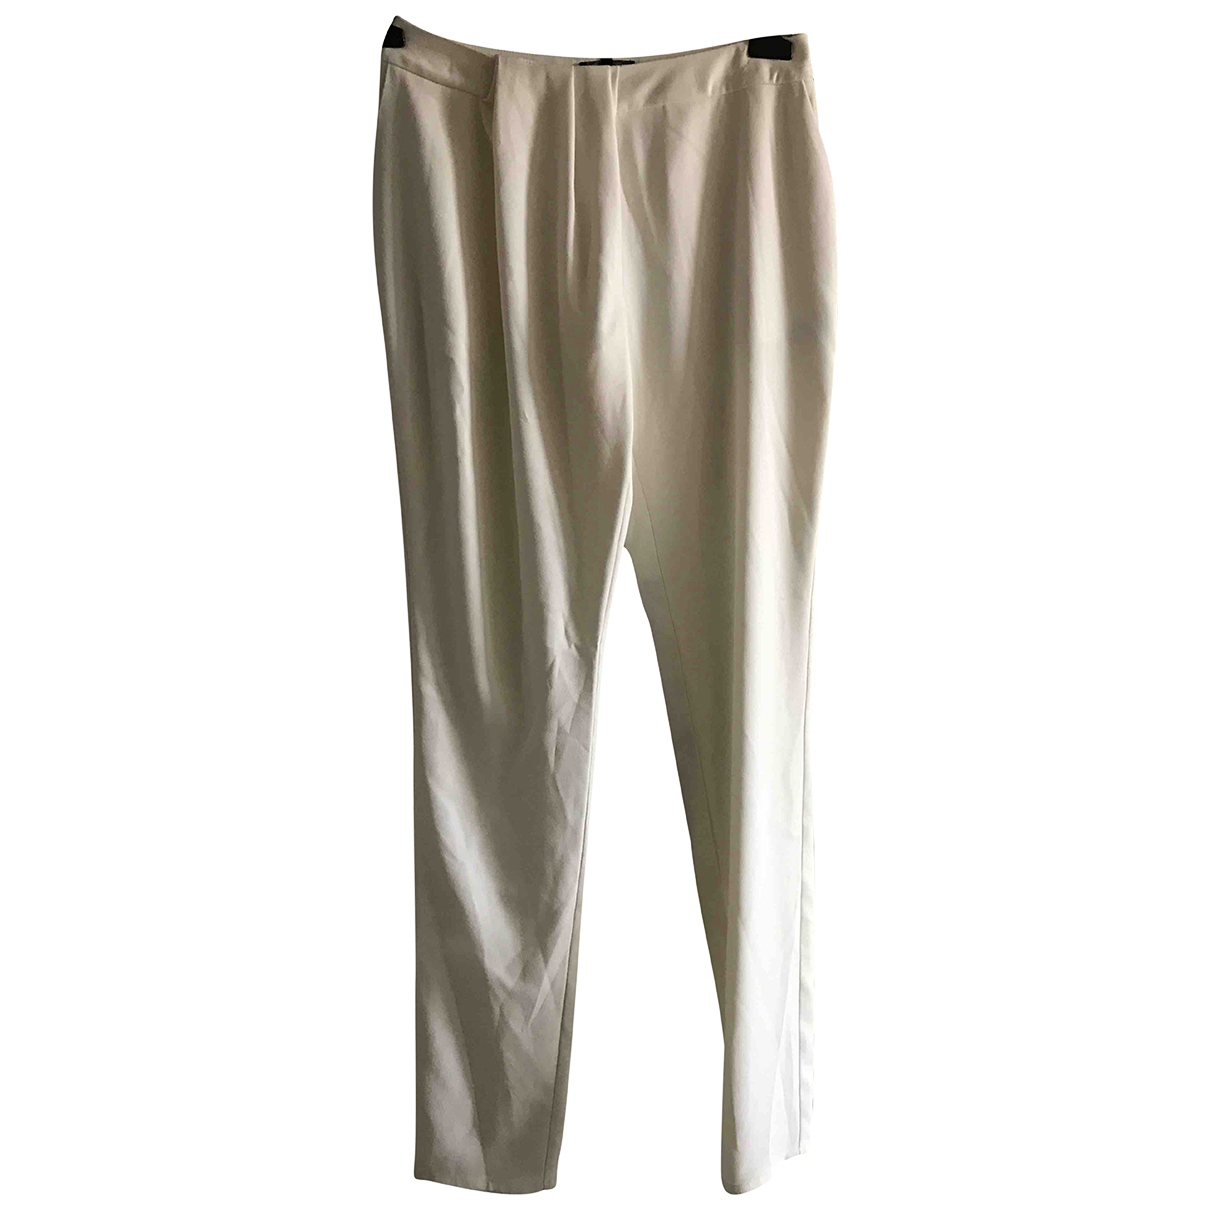 Hôtel Particulier N White Trousers for Women 38 FR